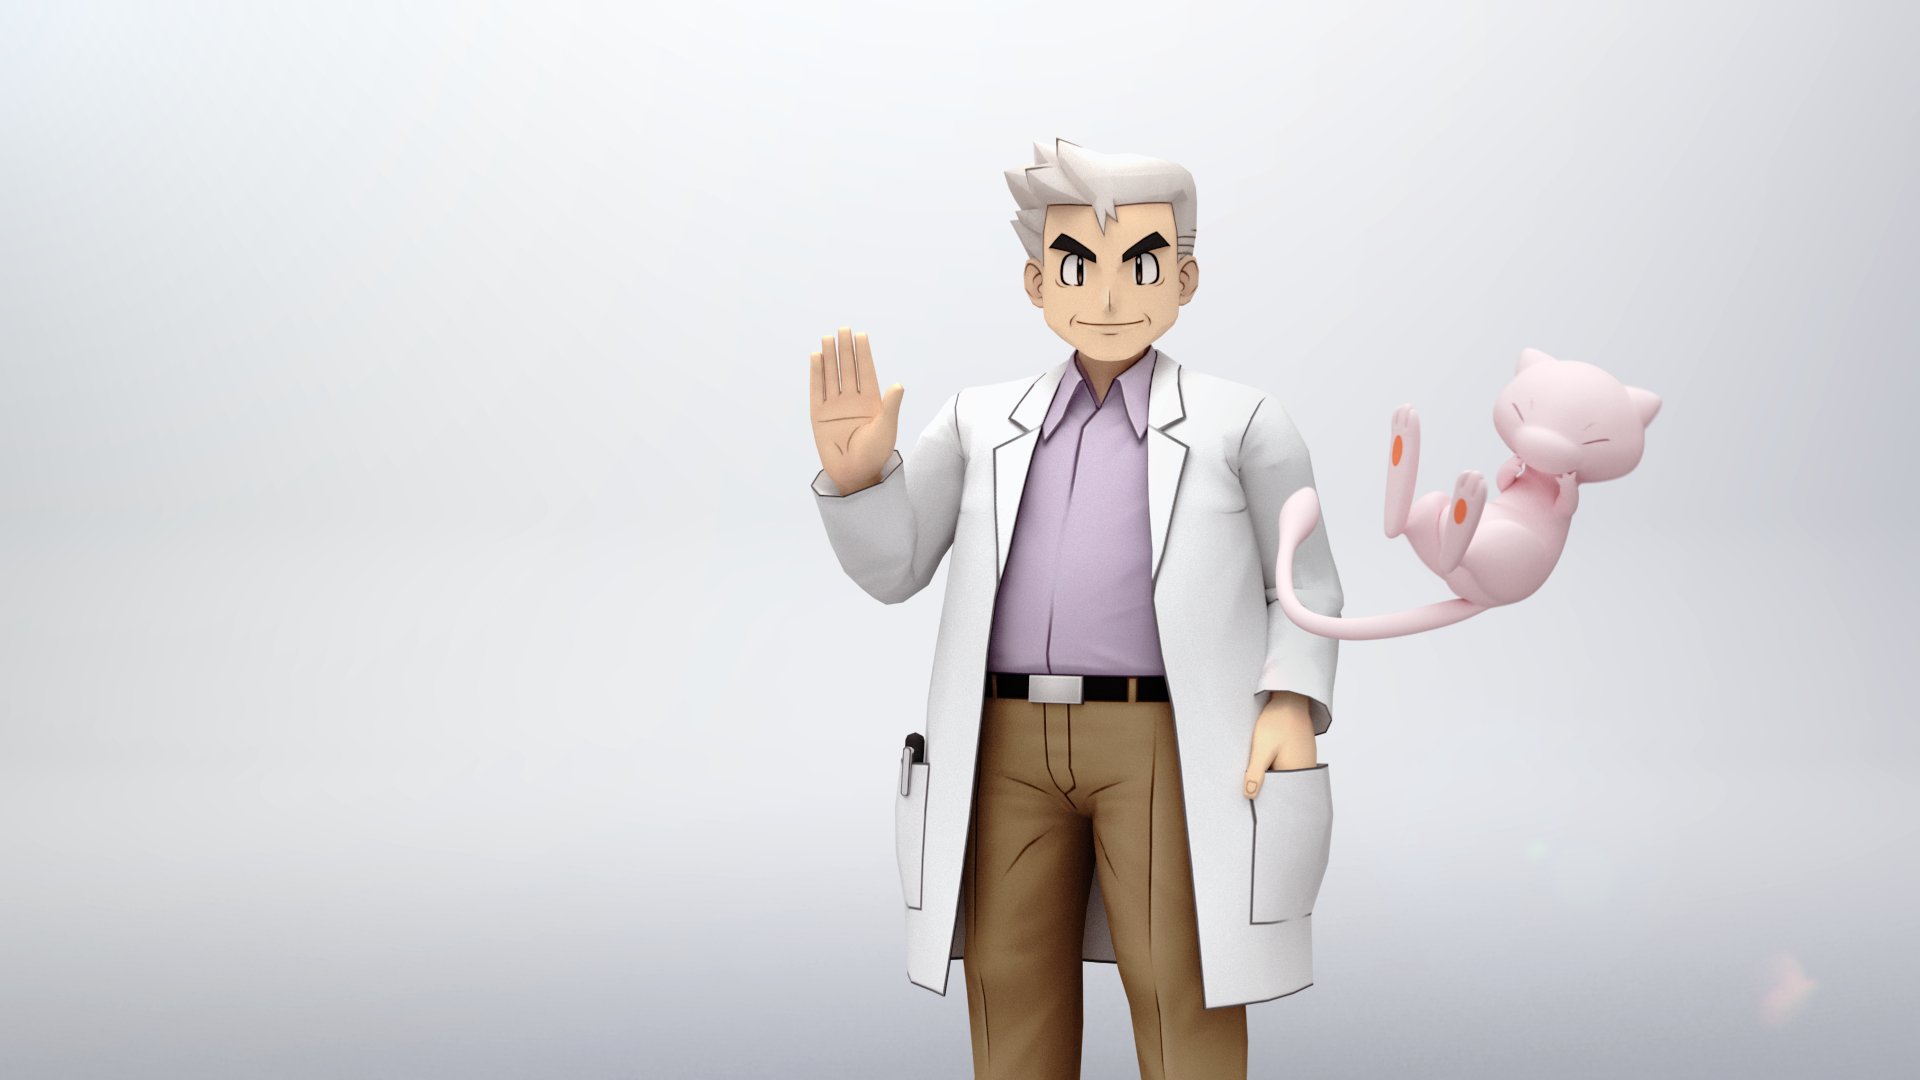 For The First Time Ever Professor Oak Can Battle As A Pokemon